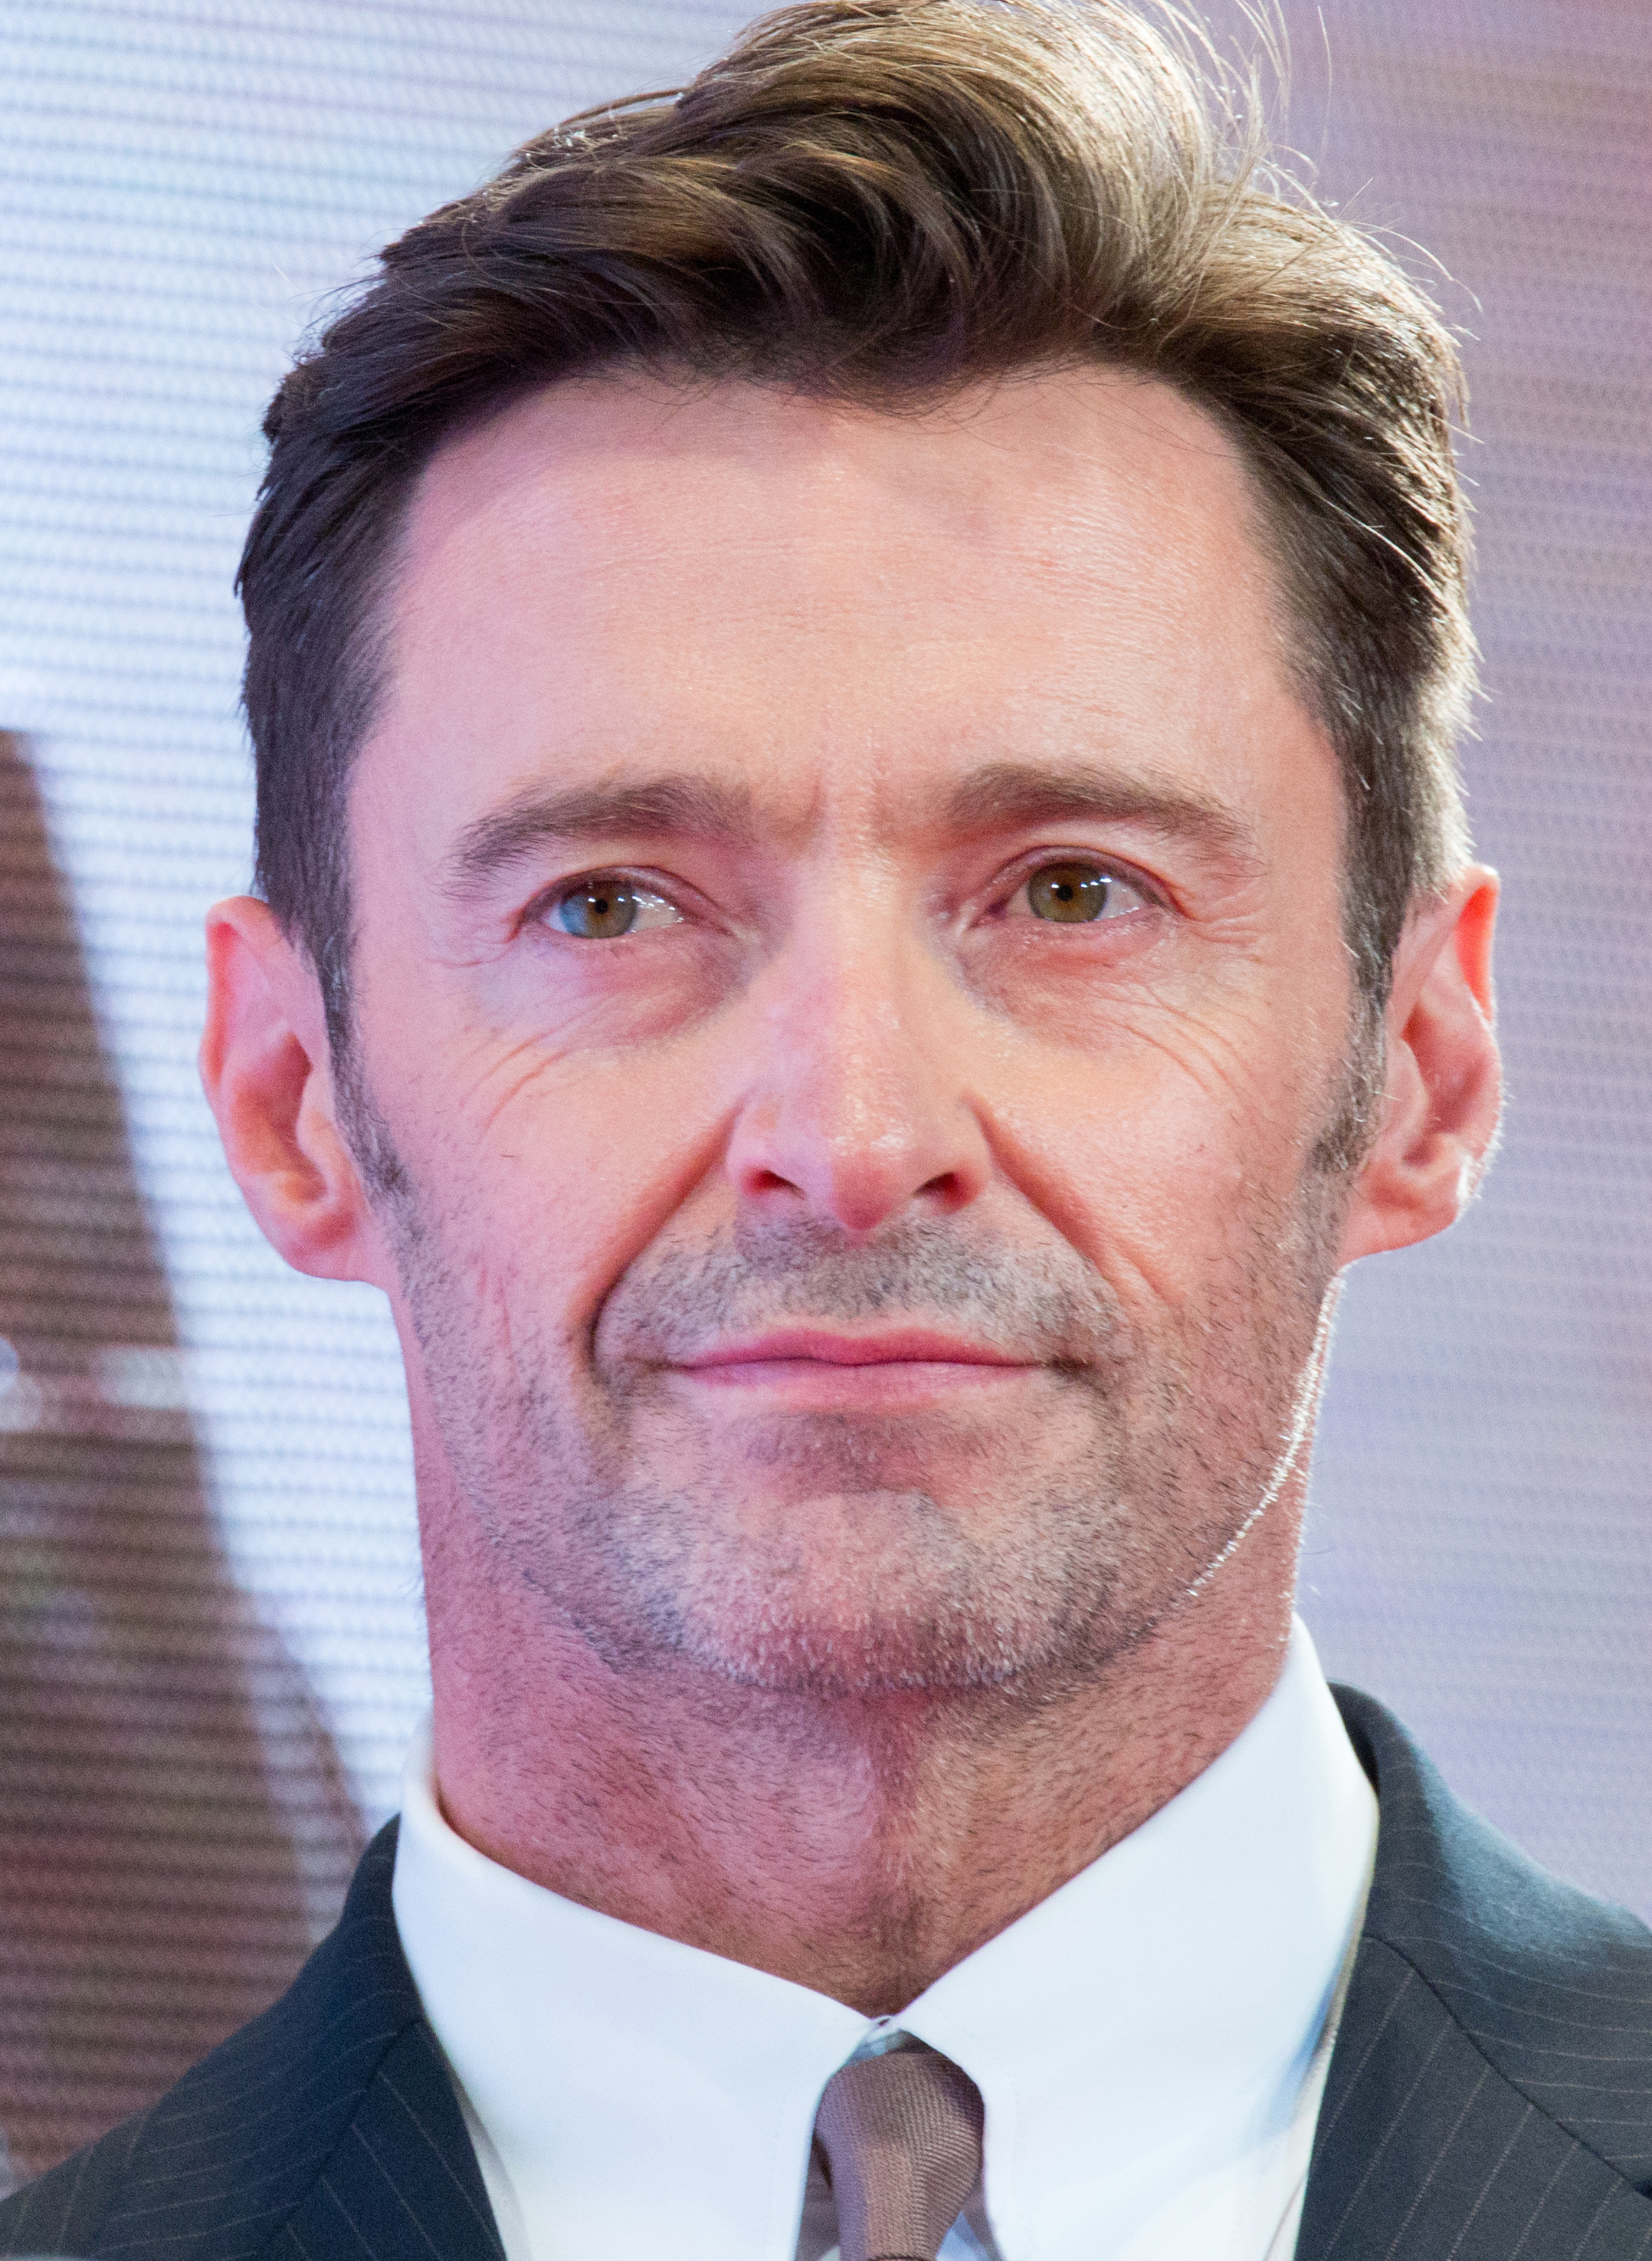 Hugh Jackman Wikipedia He is the younger brother of actor rick gomez. hugh jackman wikipedia